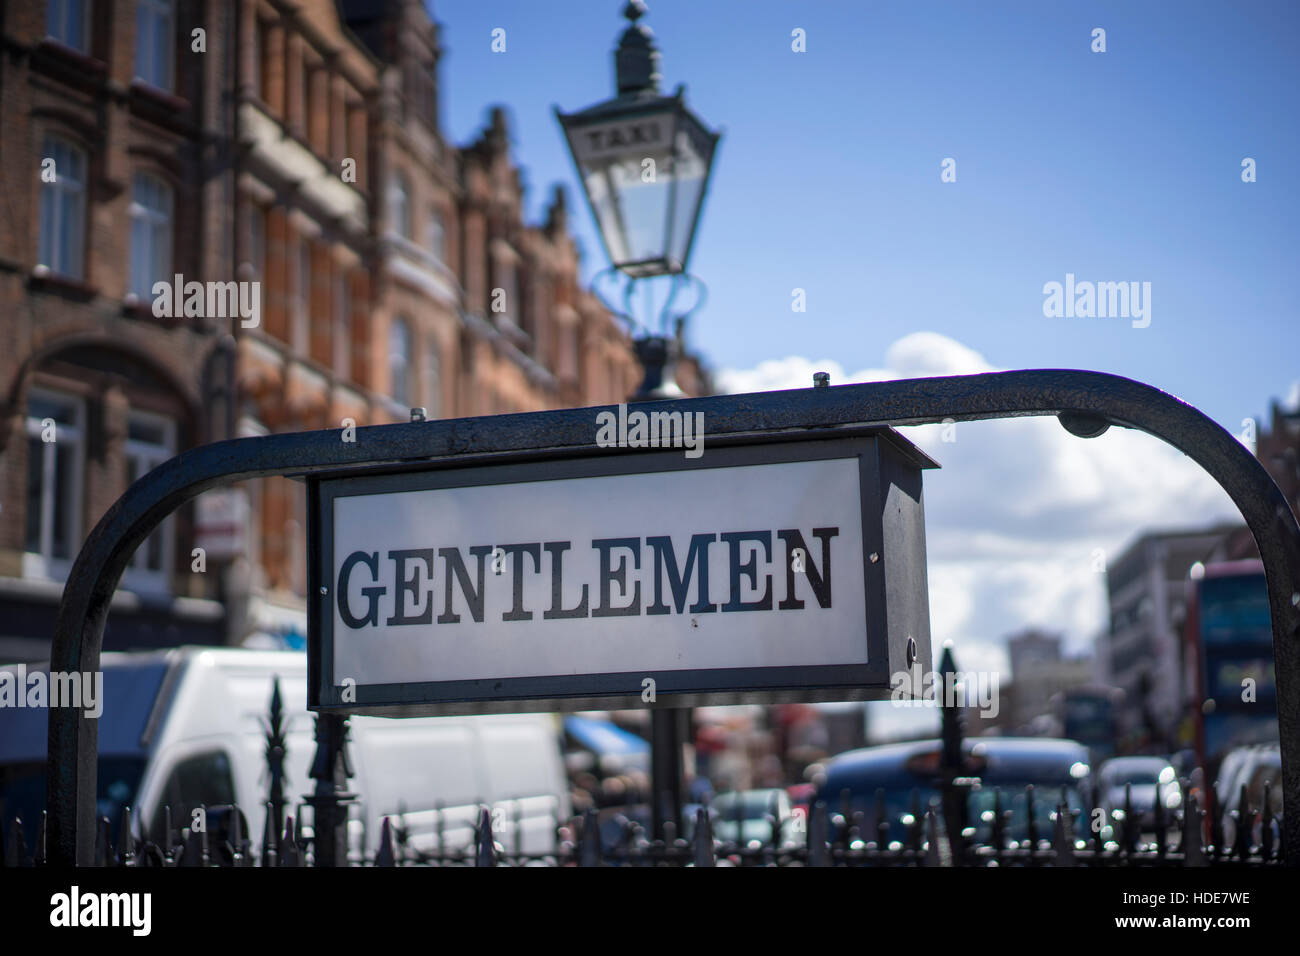 Gentlemen sign over public conveniences, lavatories on Camden Town High Street with a Victorian taxi lampost - Stock Image